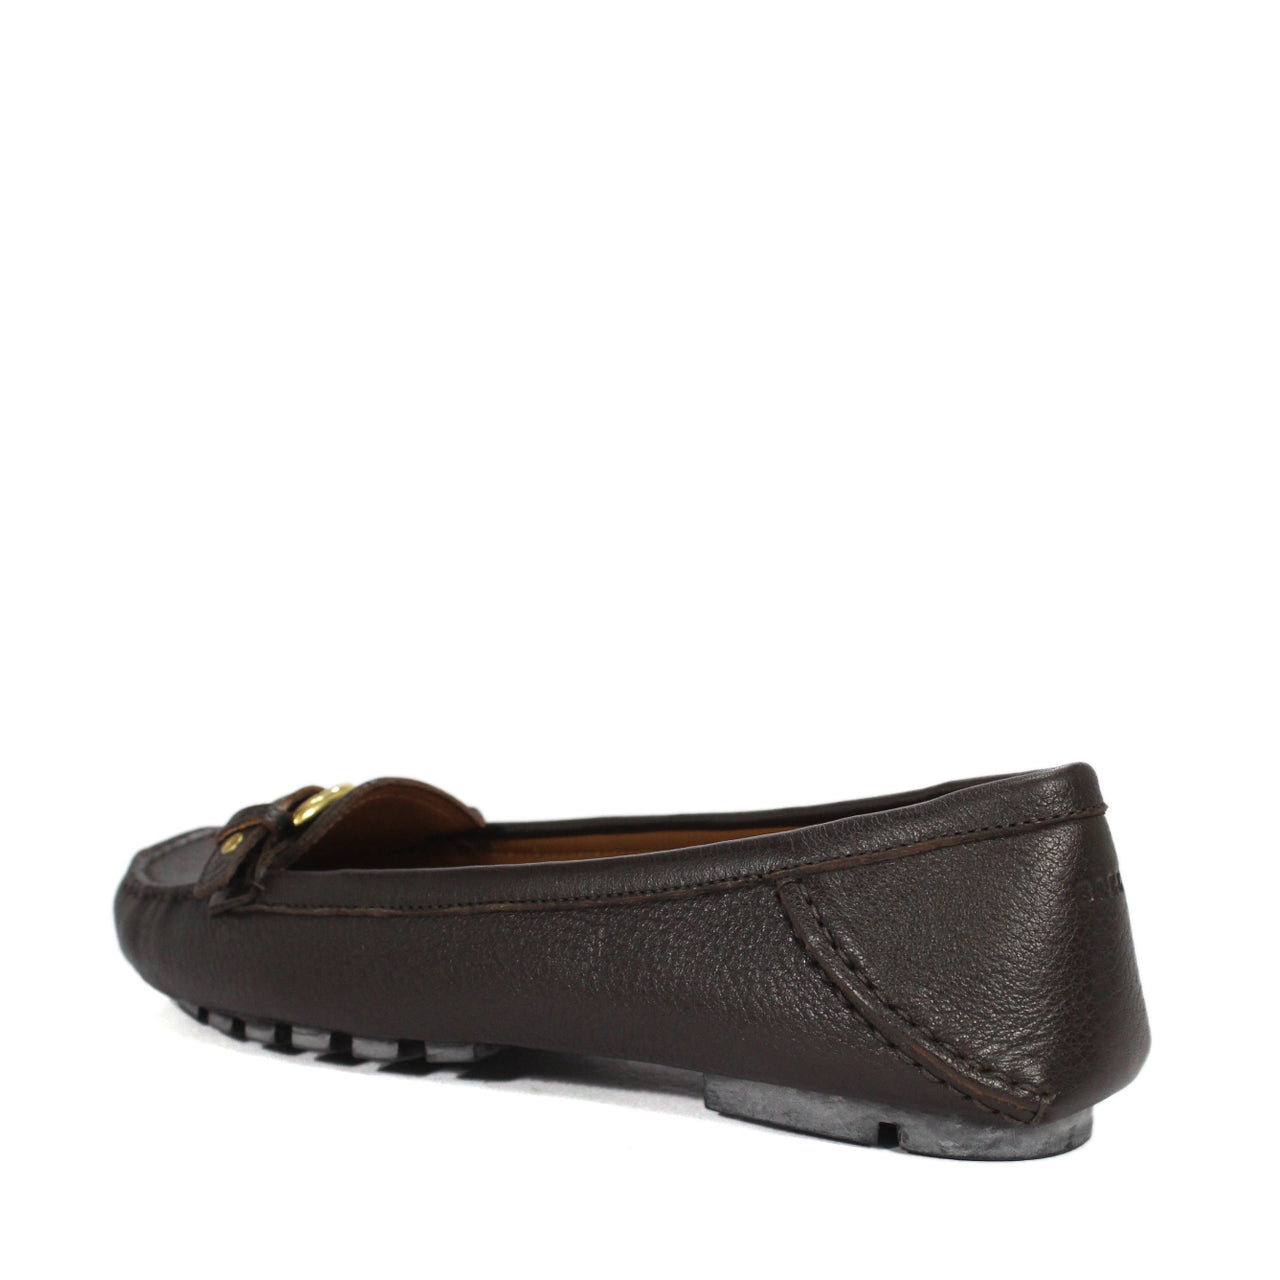 Bally Dorialla Women's Buckle Bit Loafers In Moka